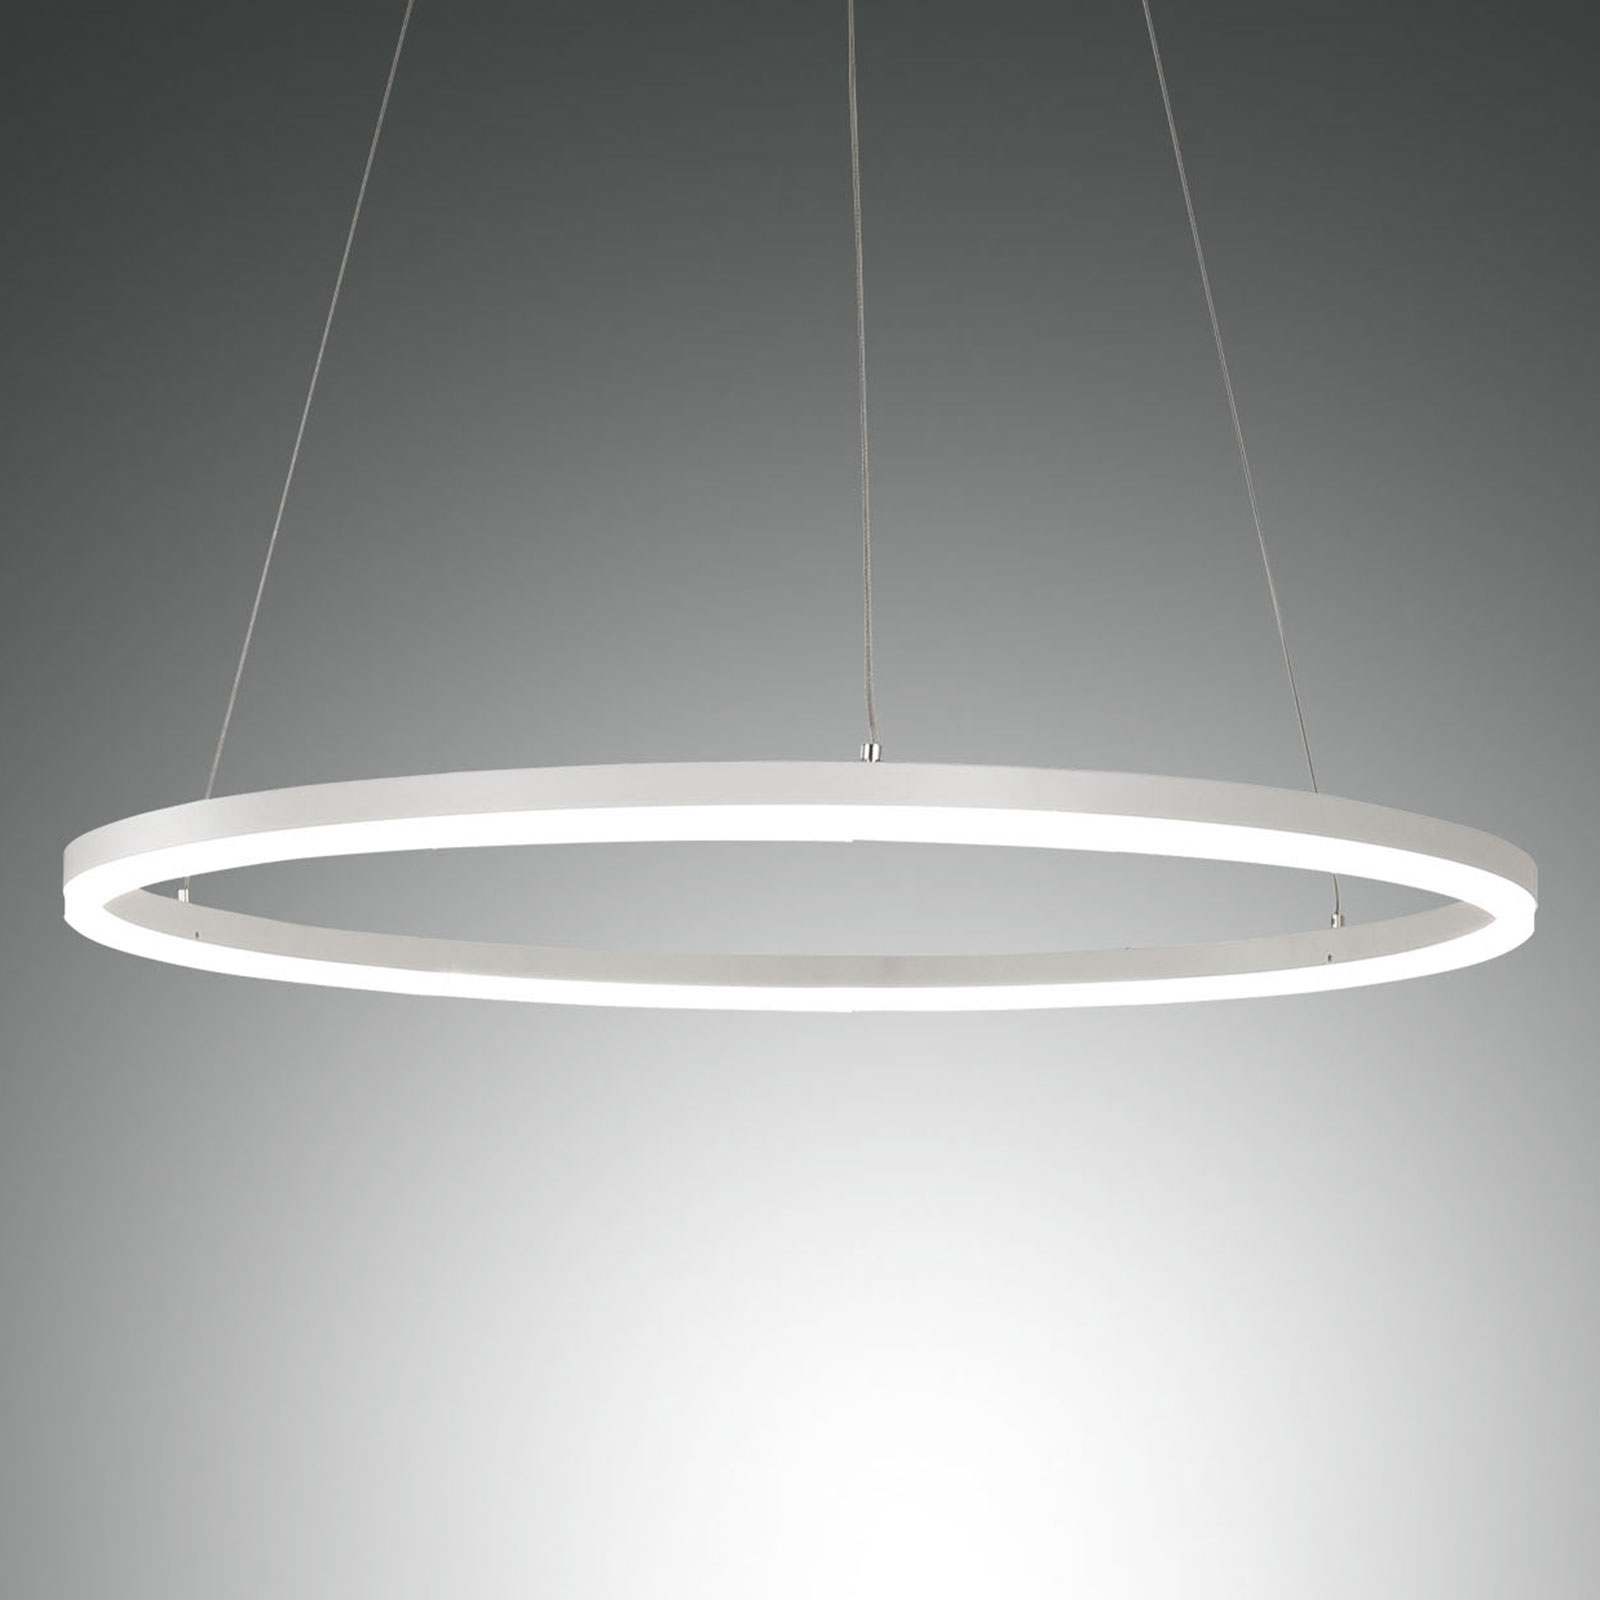 LED hanglamp Giotto, 1-lamp, wit